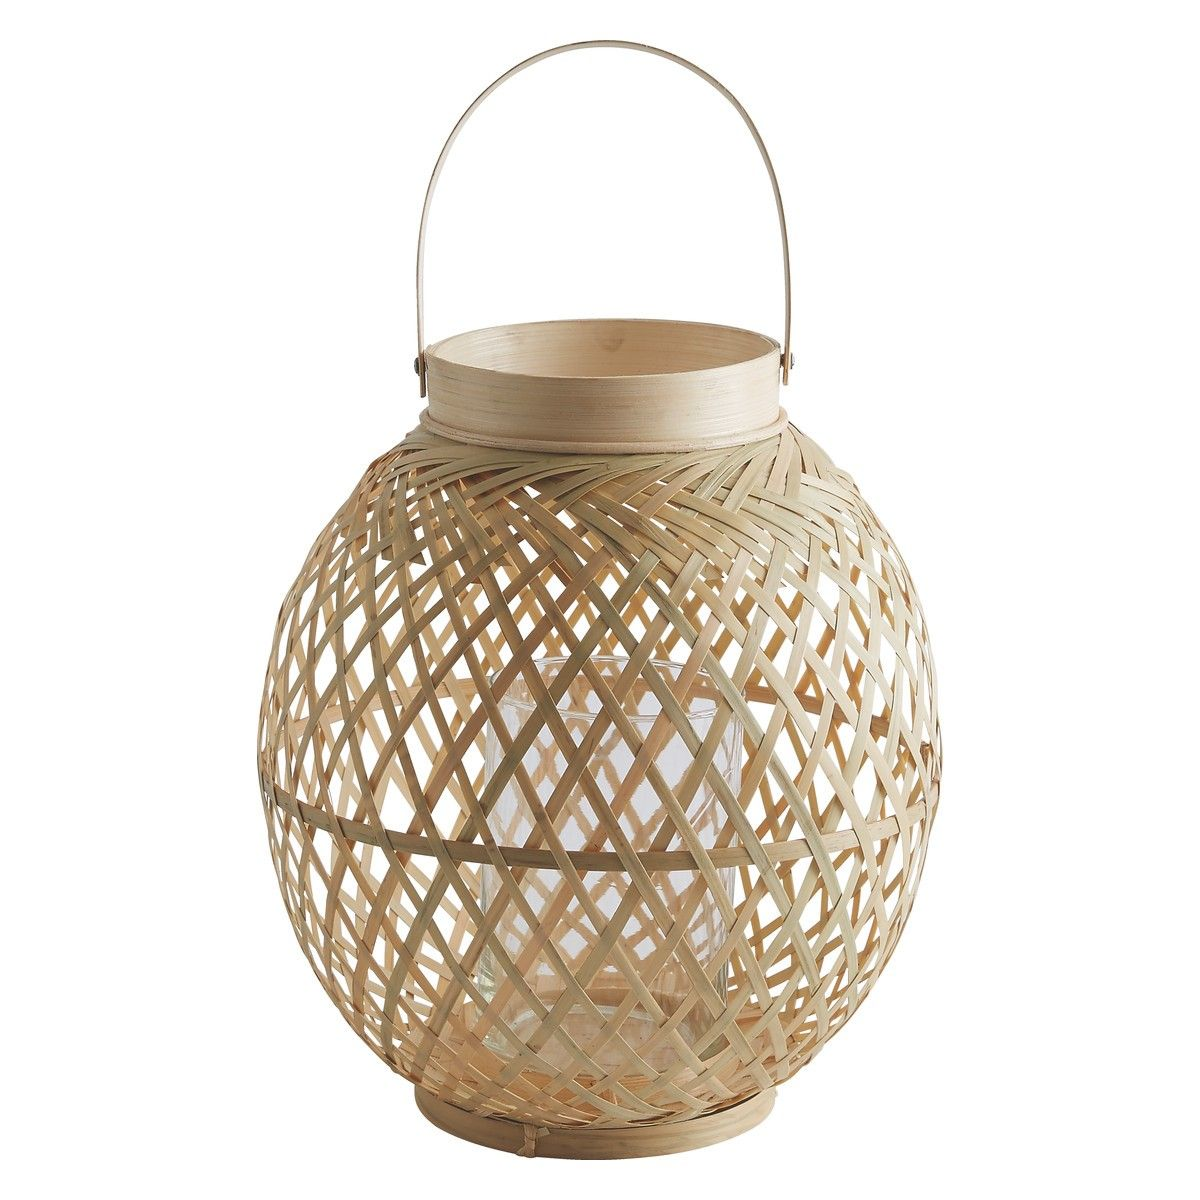 Jexa woven bamboo lantern 24x26cm buy now at habitat uk add a stylish edge to your garden with habitats range of outdoor lighting and accessories whether youre looking for lanterns decorations or more mozeypictures Images